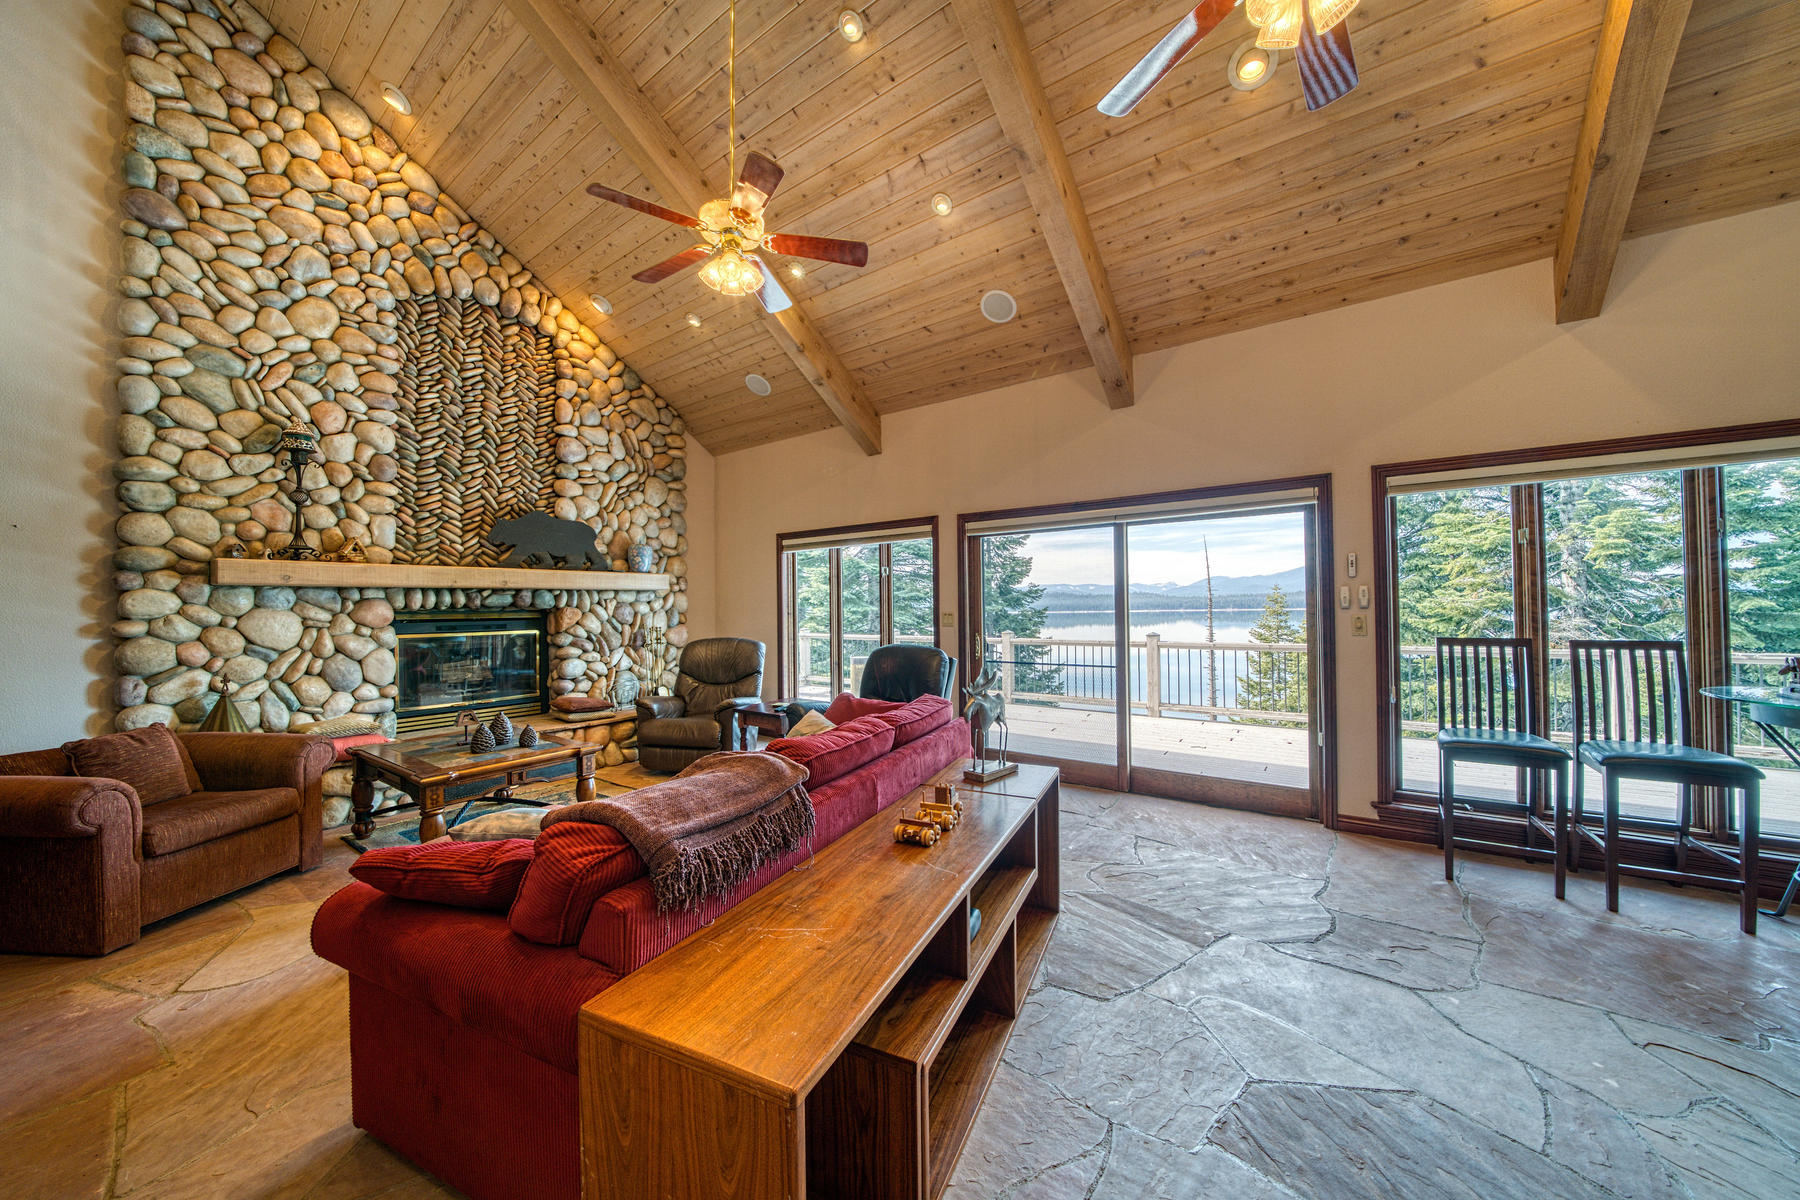 Single Family Homes for Active at Beautiful lake front home 925 Lassen View Drive Lake Almanor, California 96137 United States